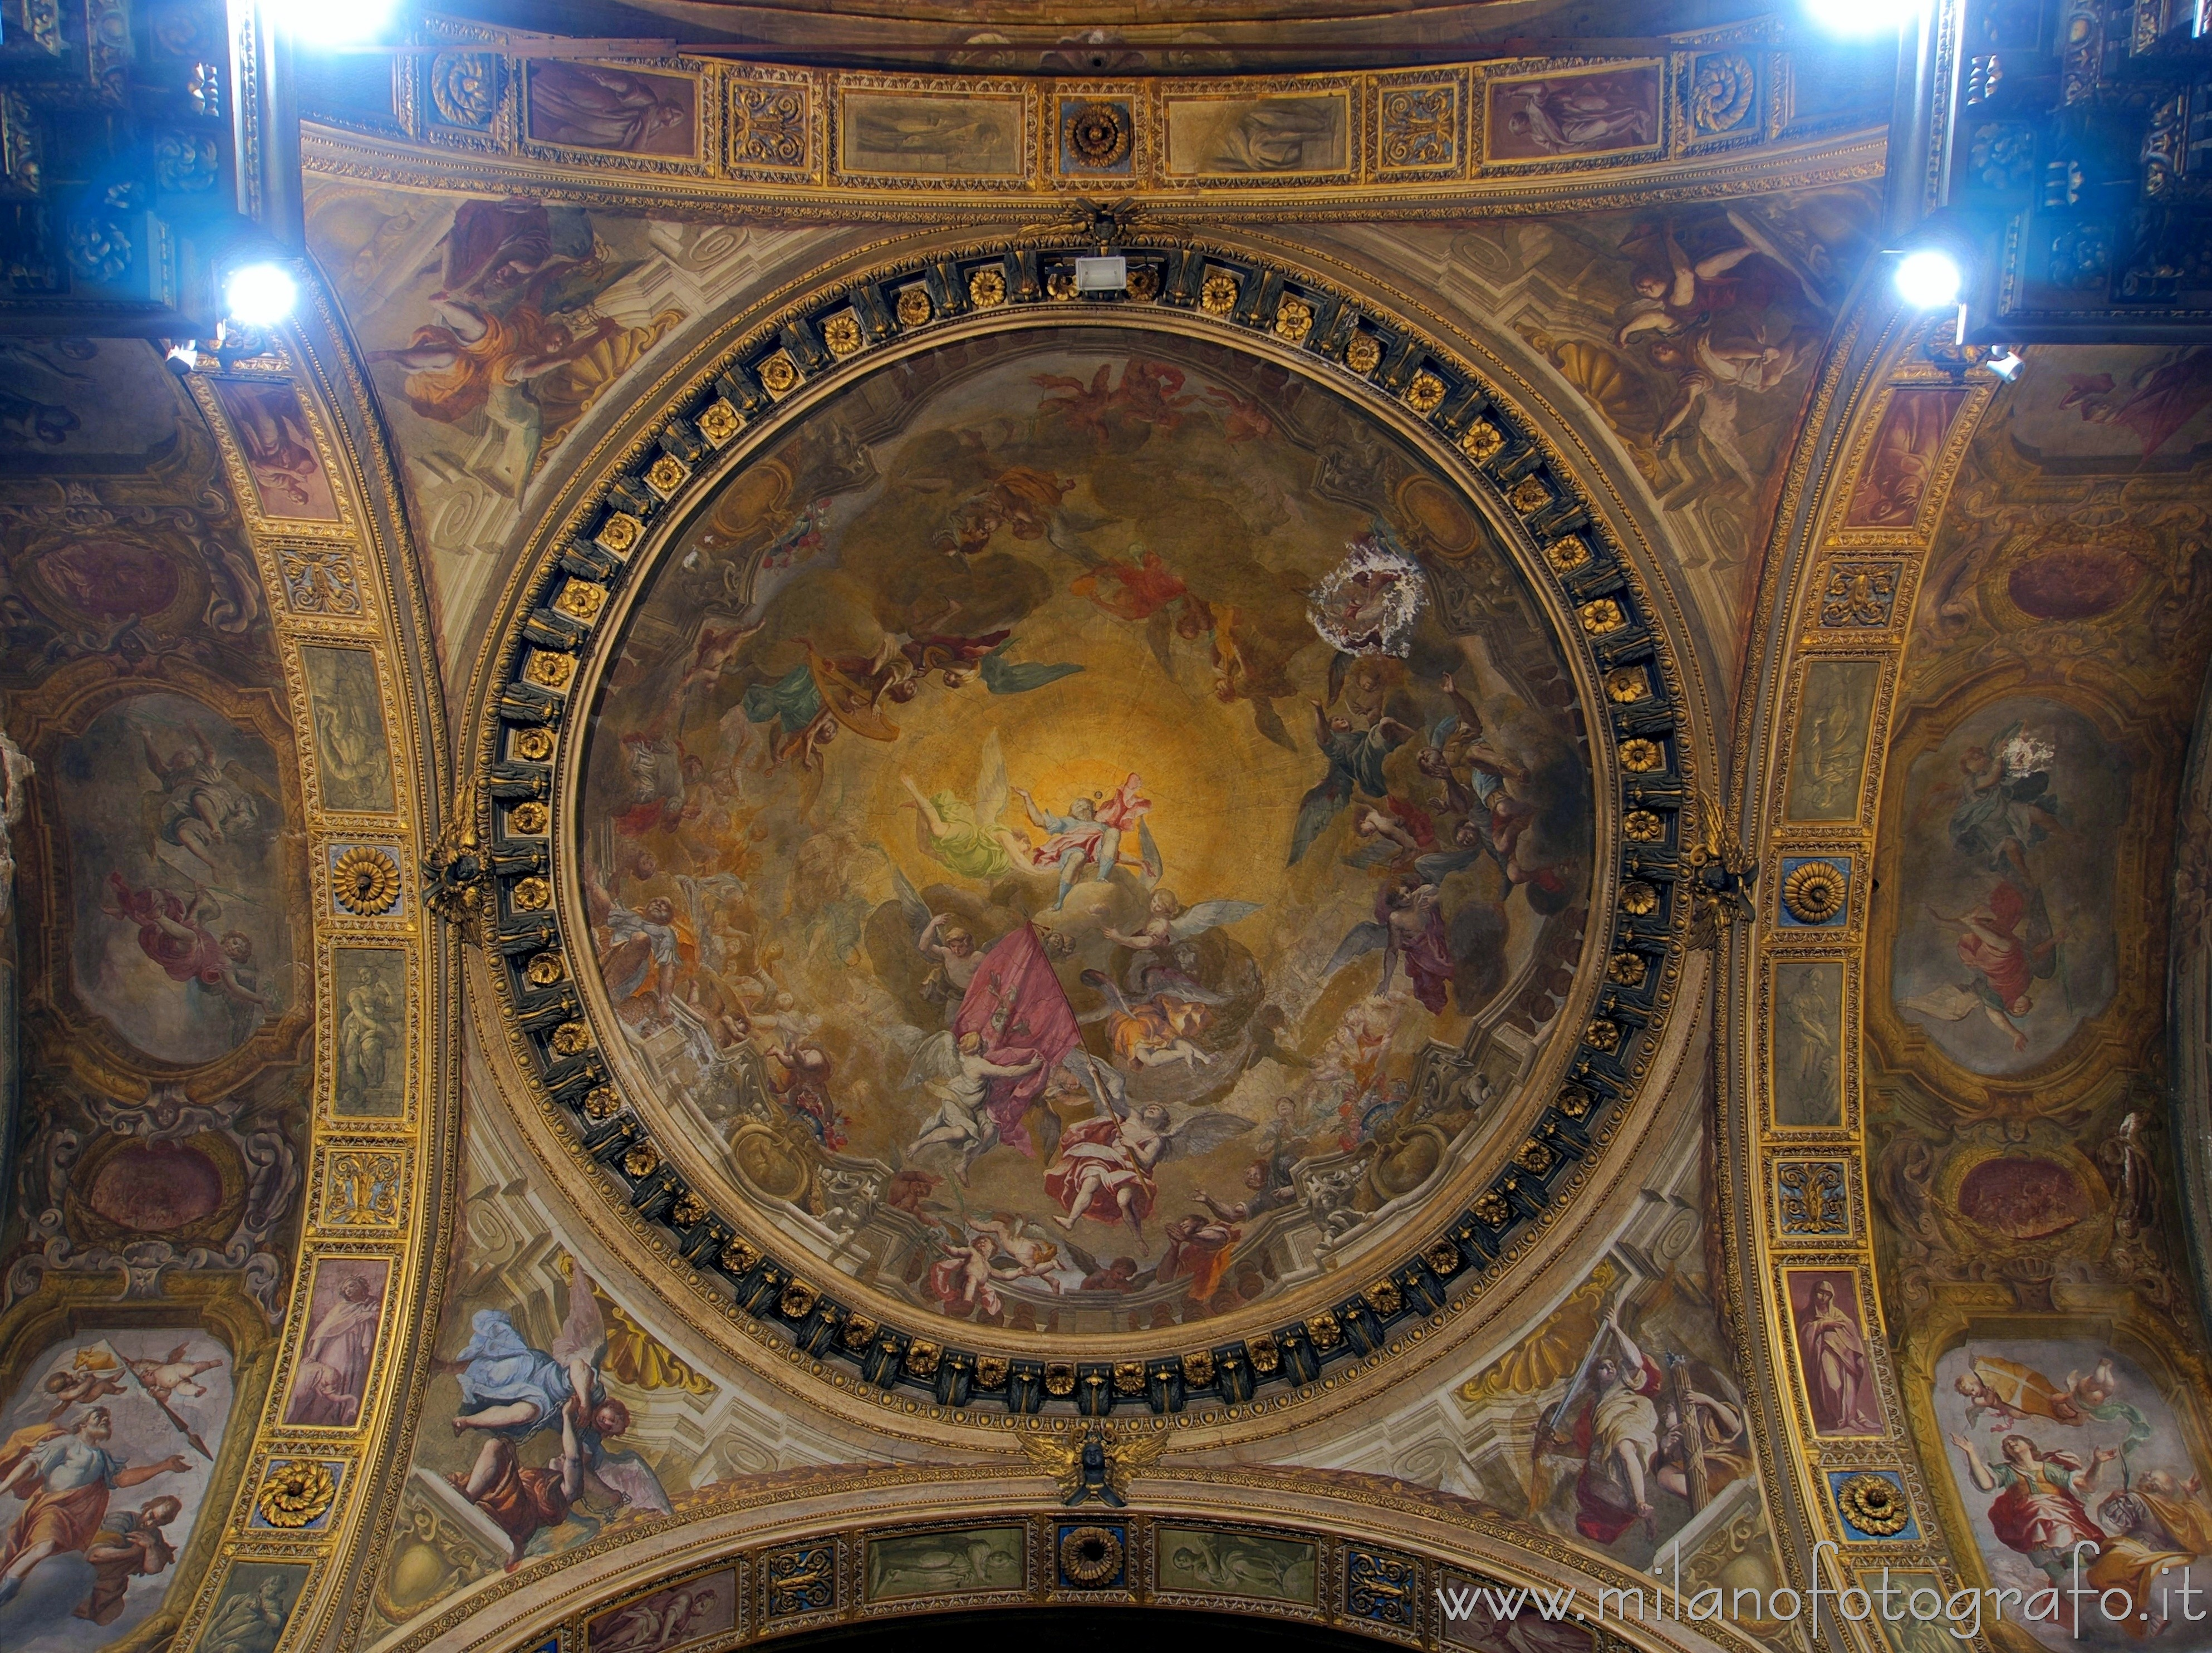 Milan (Italy): Dome of the presbytery of the Church of Sant'Alessandro in Zebedia - Milan (Italy)